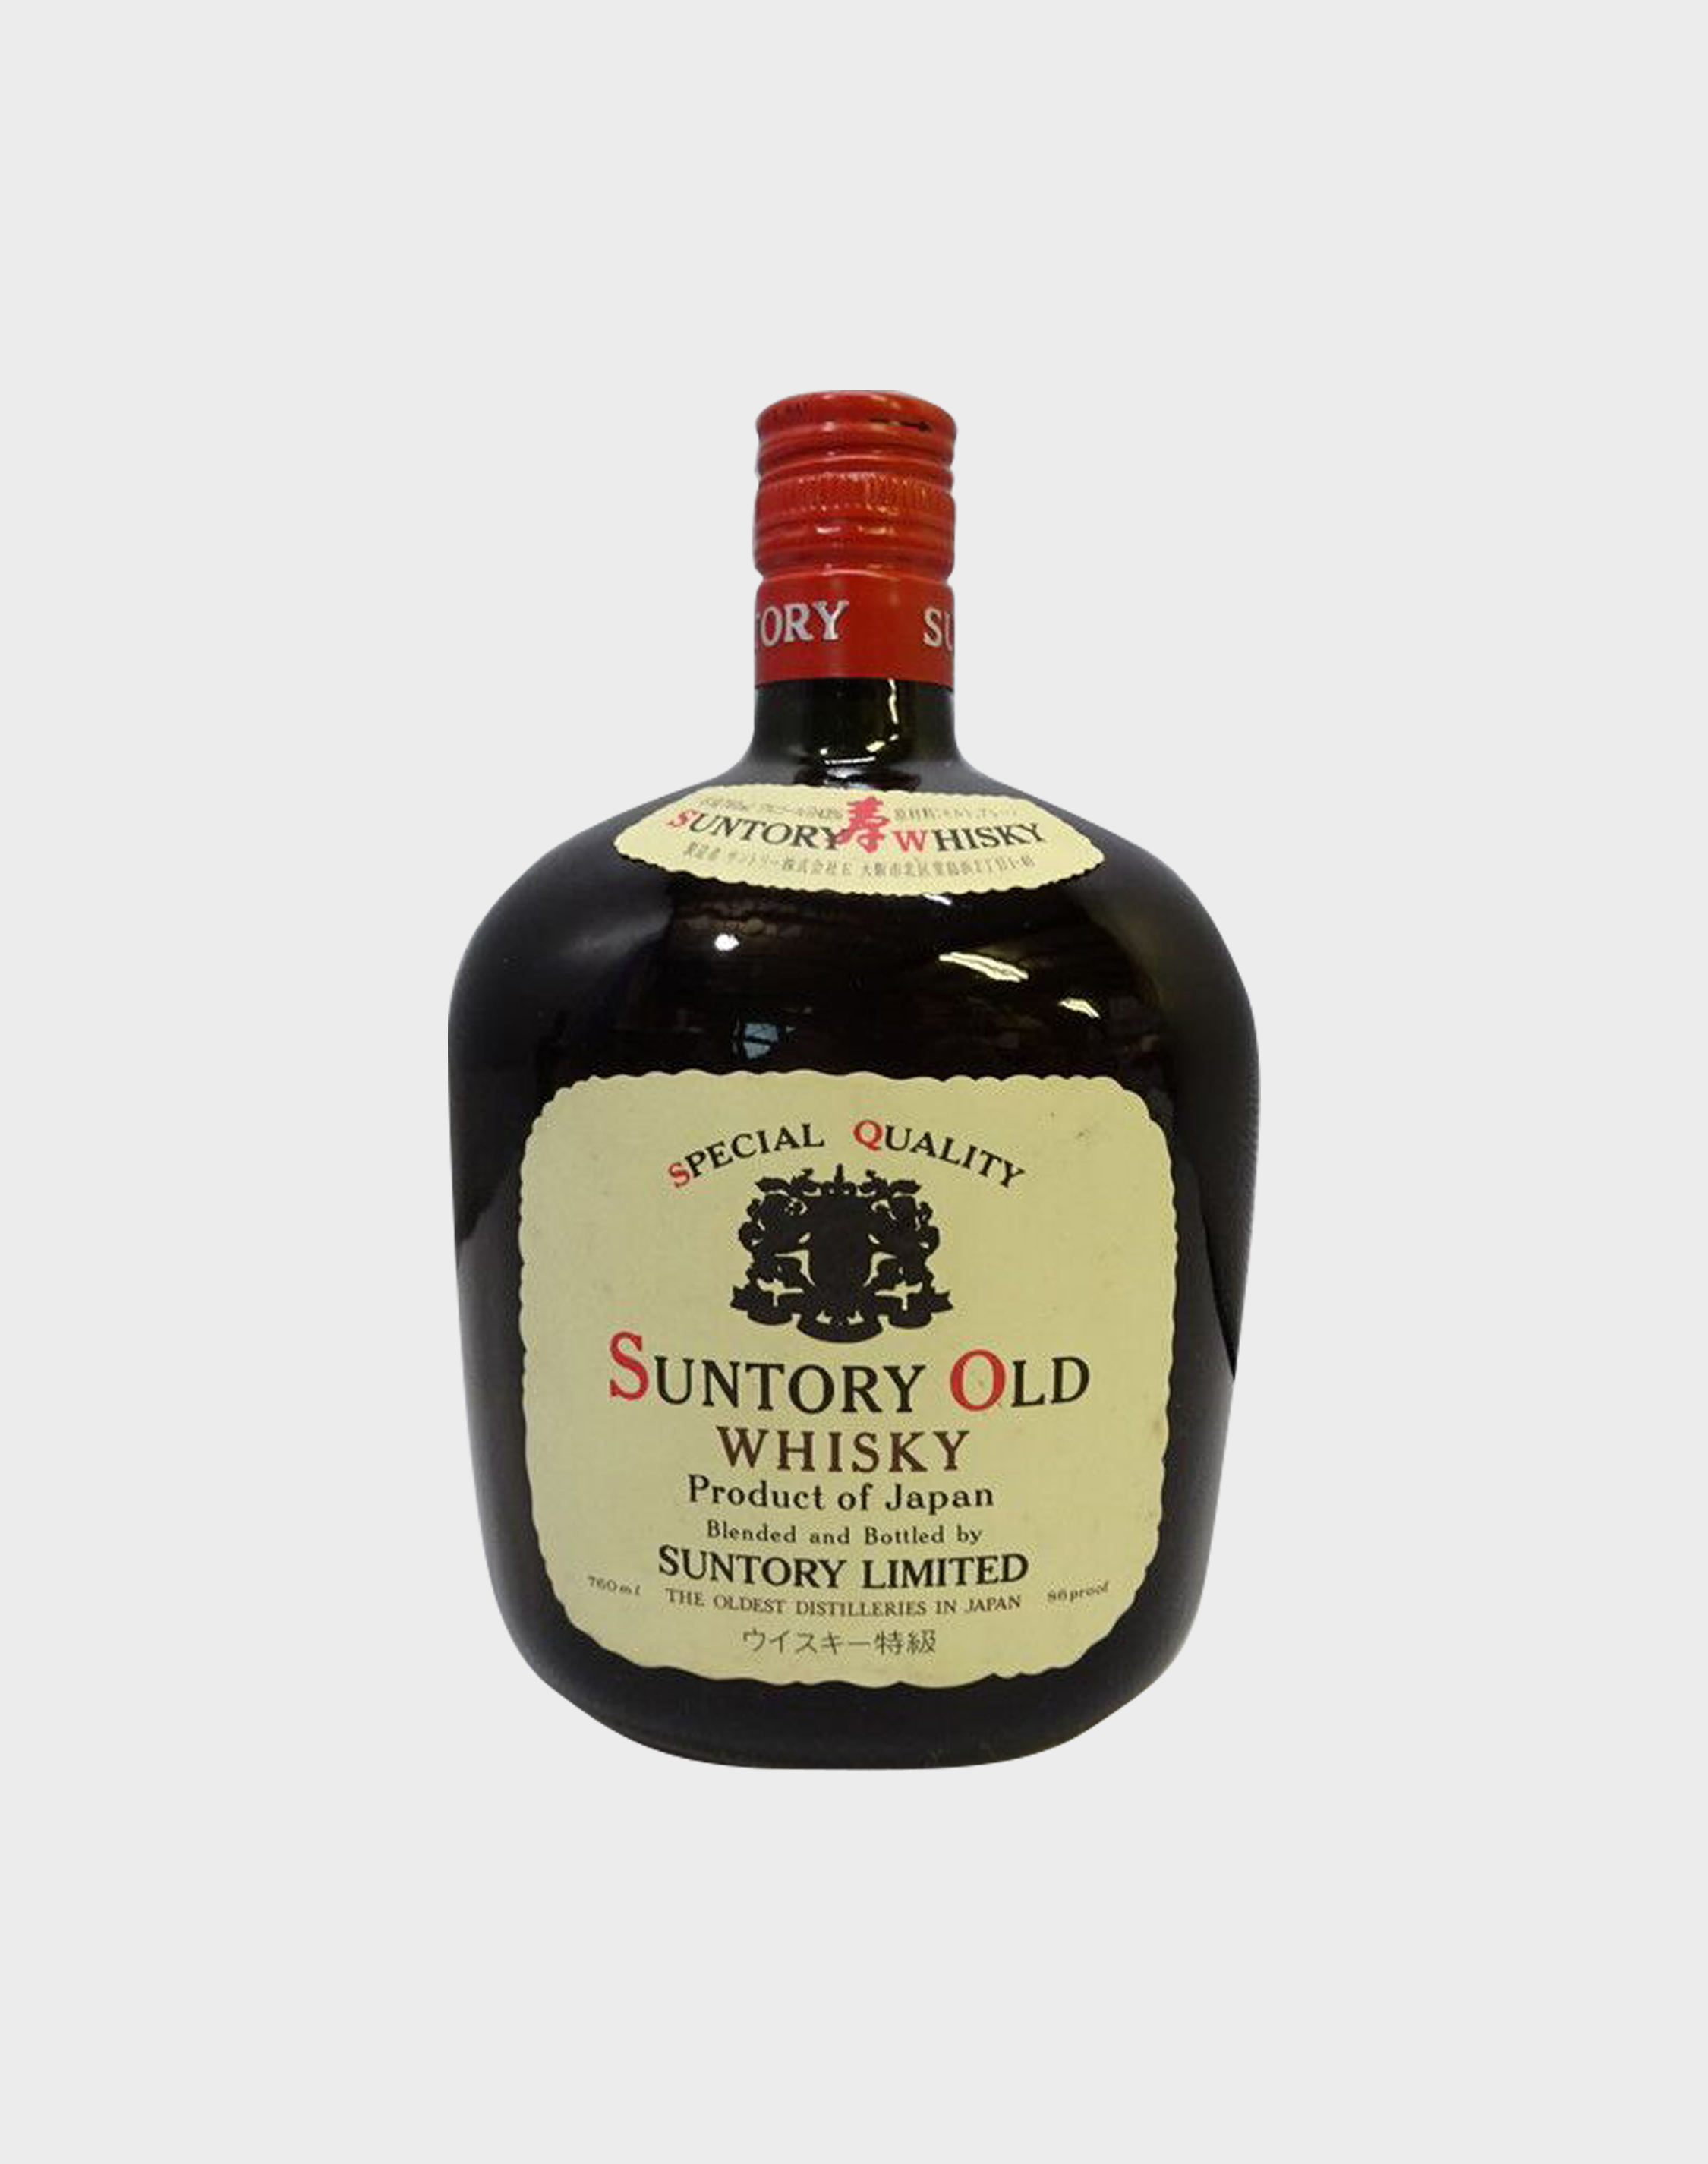 Suntory Old Whisky (No Box)